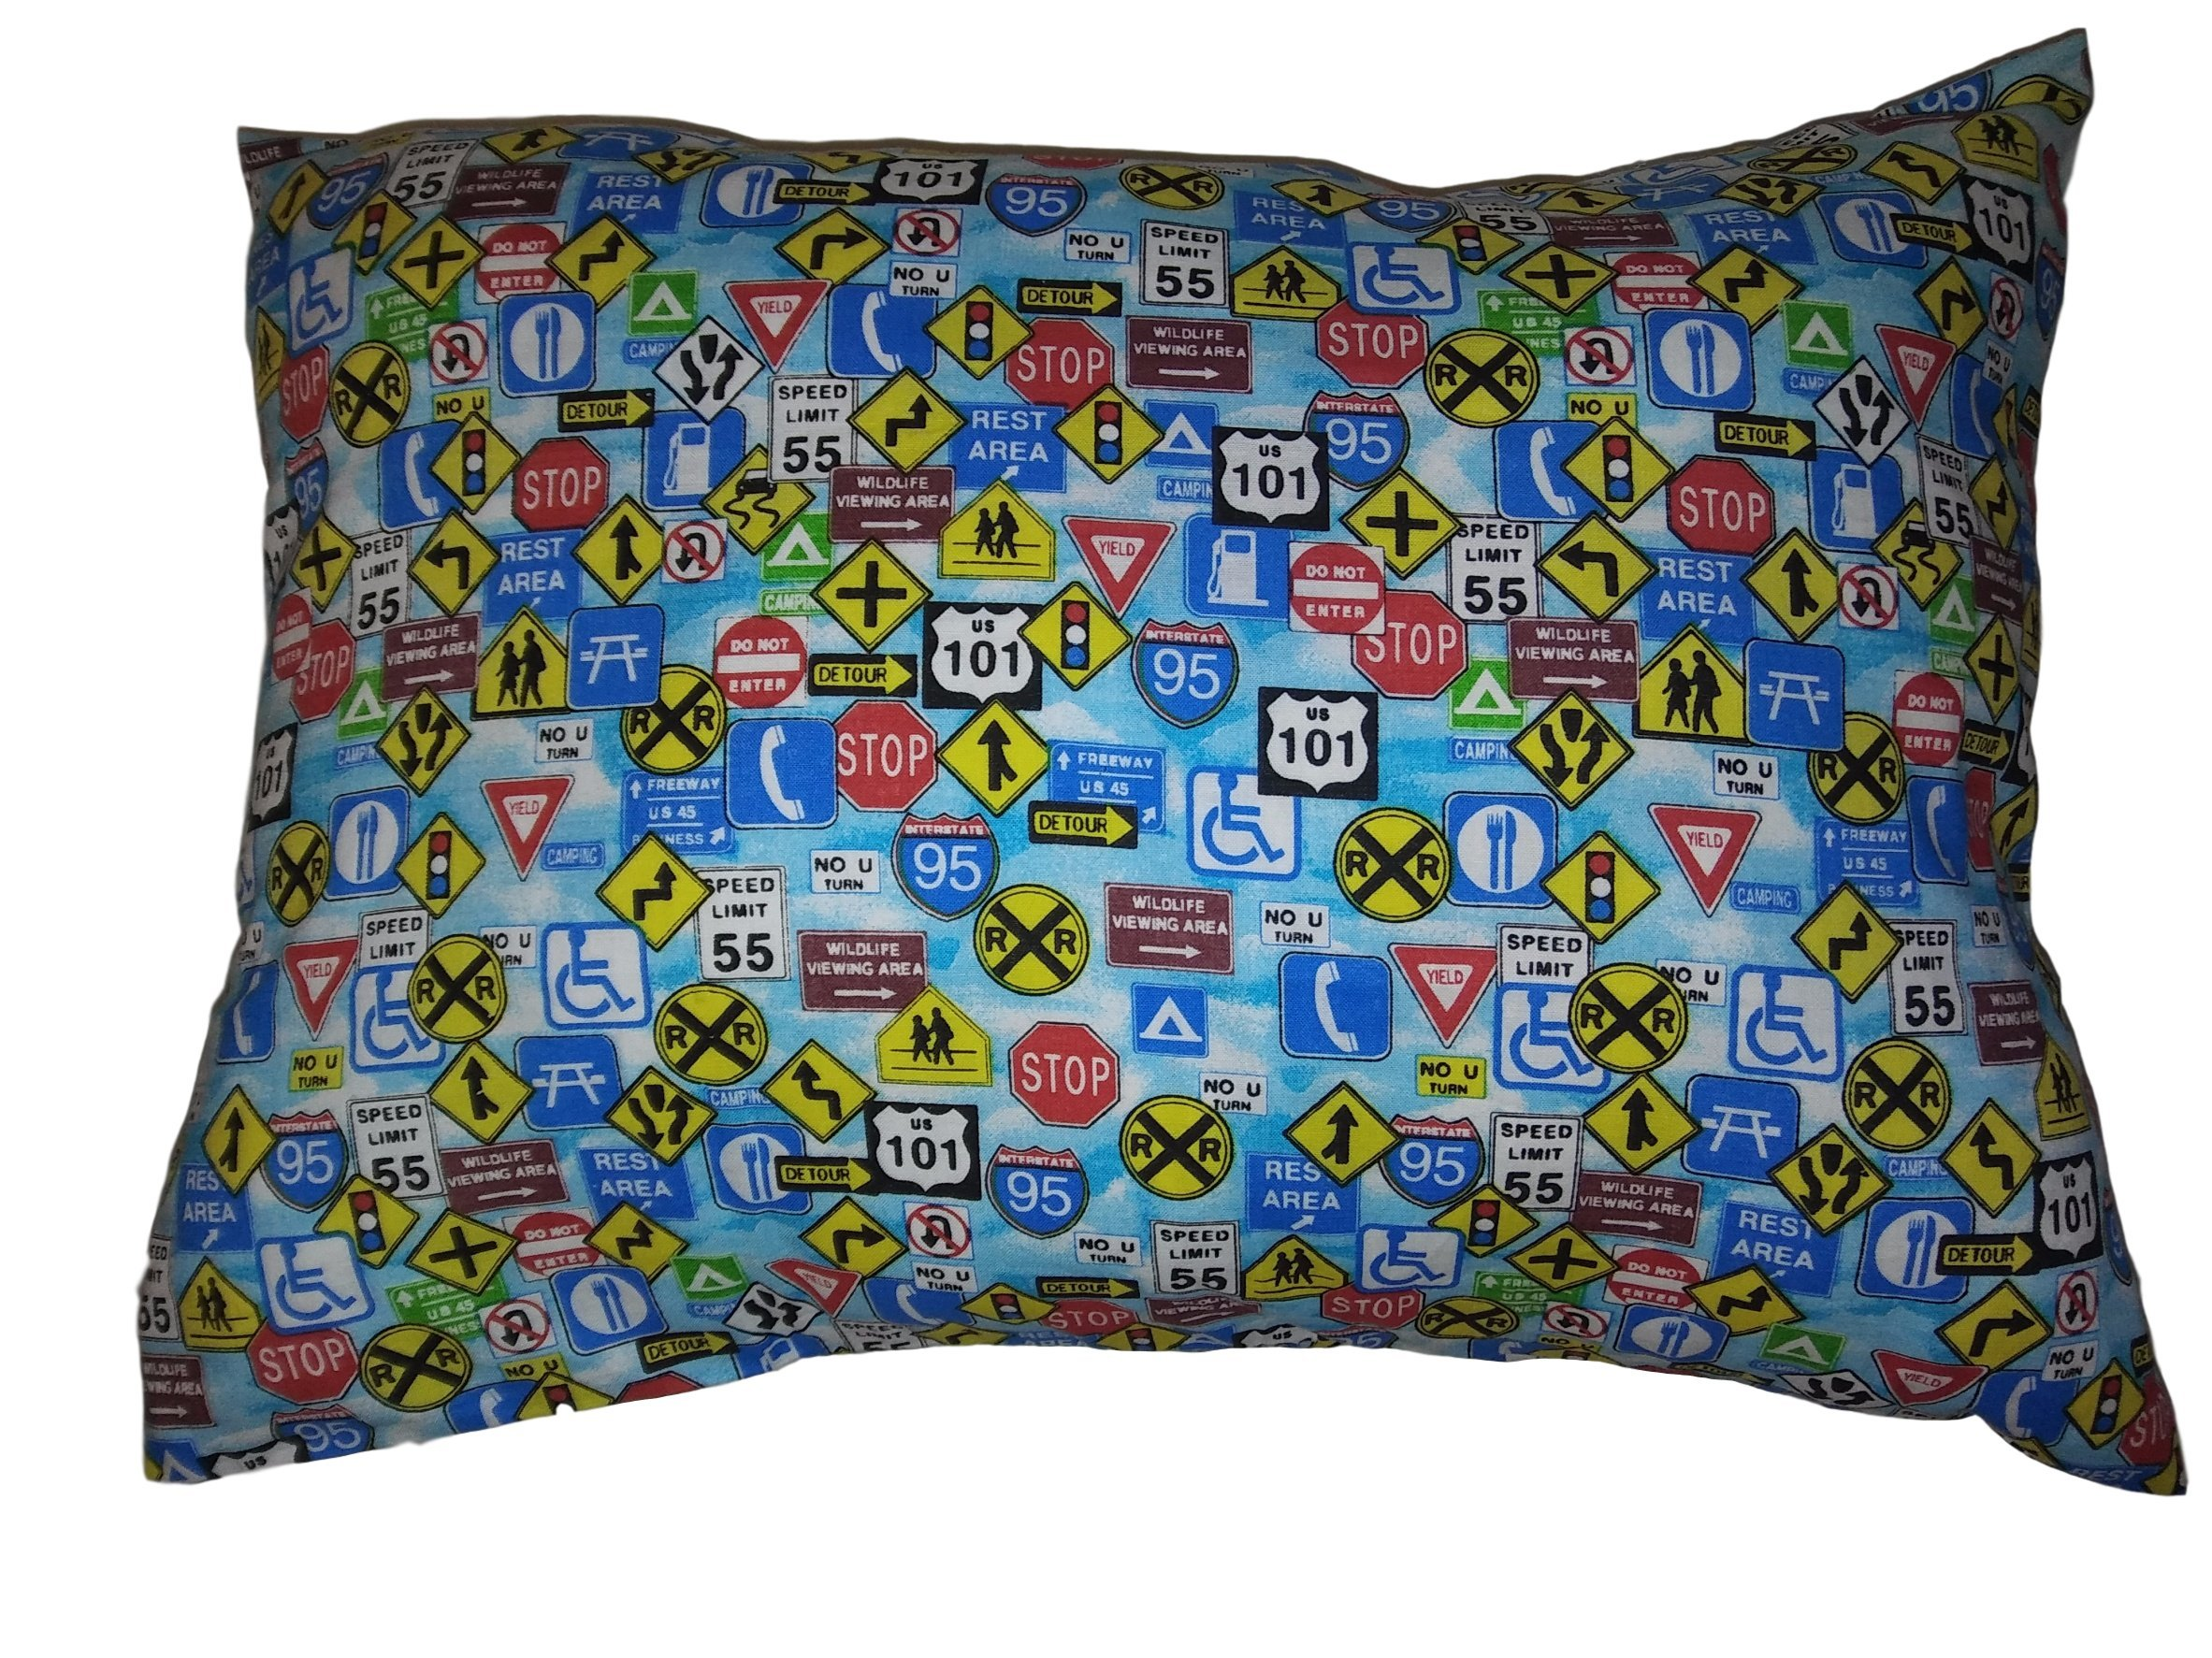 Driving Signs PILLOW with PILLOWCASE, Size 13''x 18'', throw pillow, neck or travel, bed, sofa, dorm, chair decor.Kids, Hypoallergenic, washable. Ready to use. Save$$